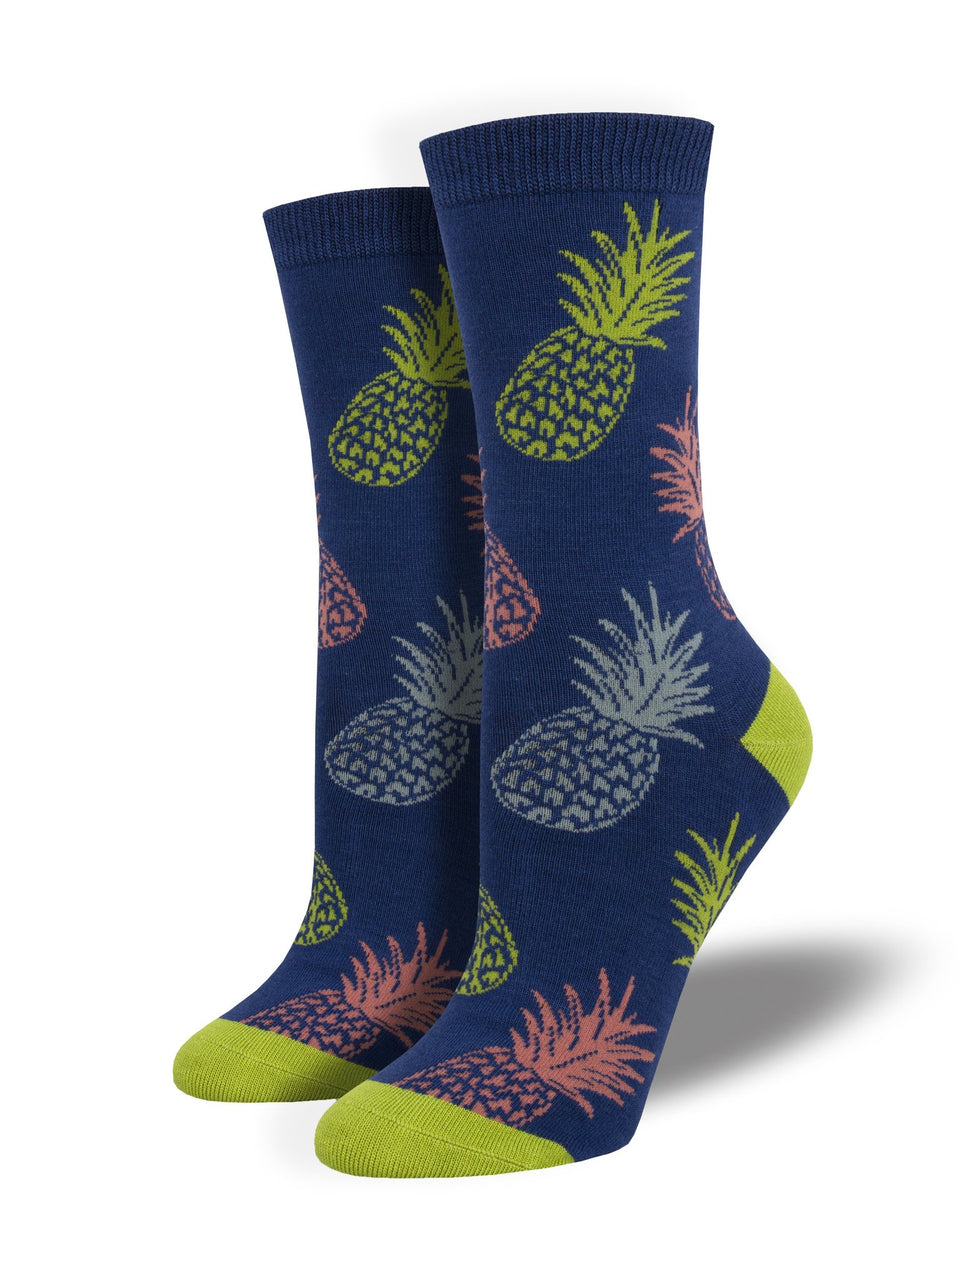 PINEAPPLE PRINT SOCKS